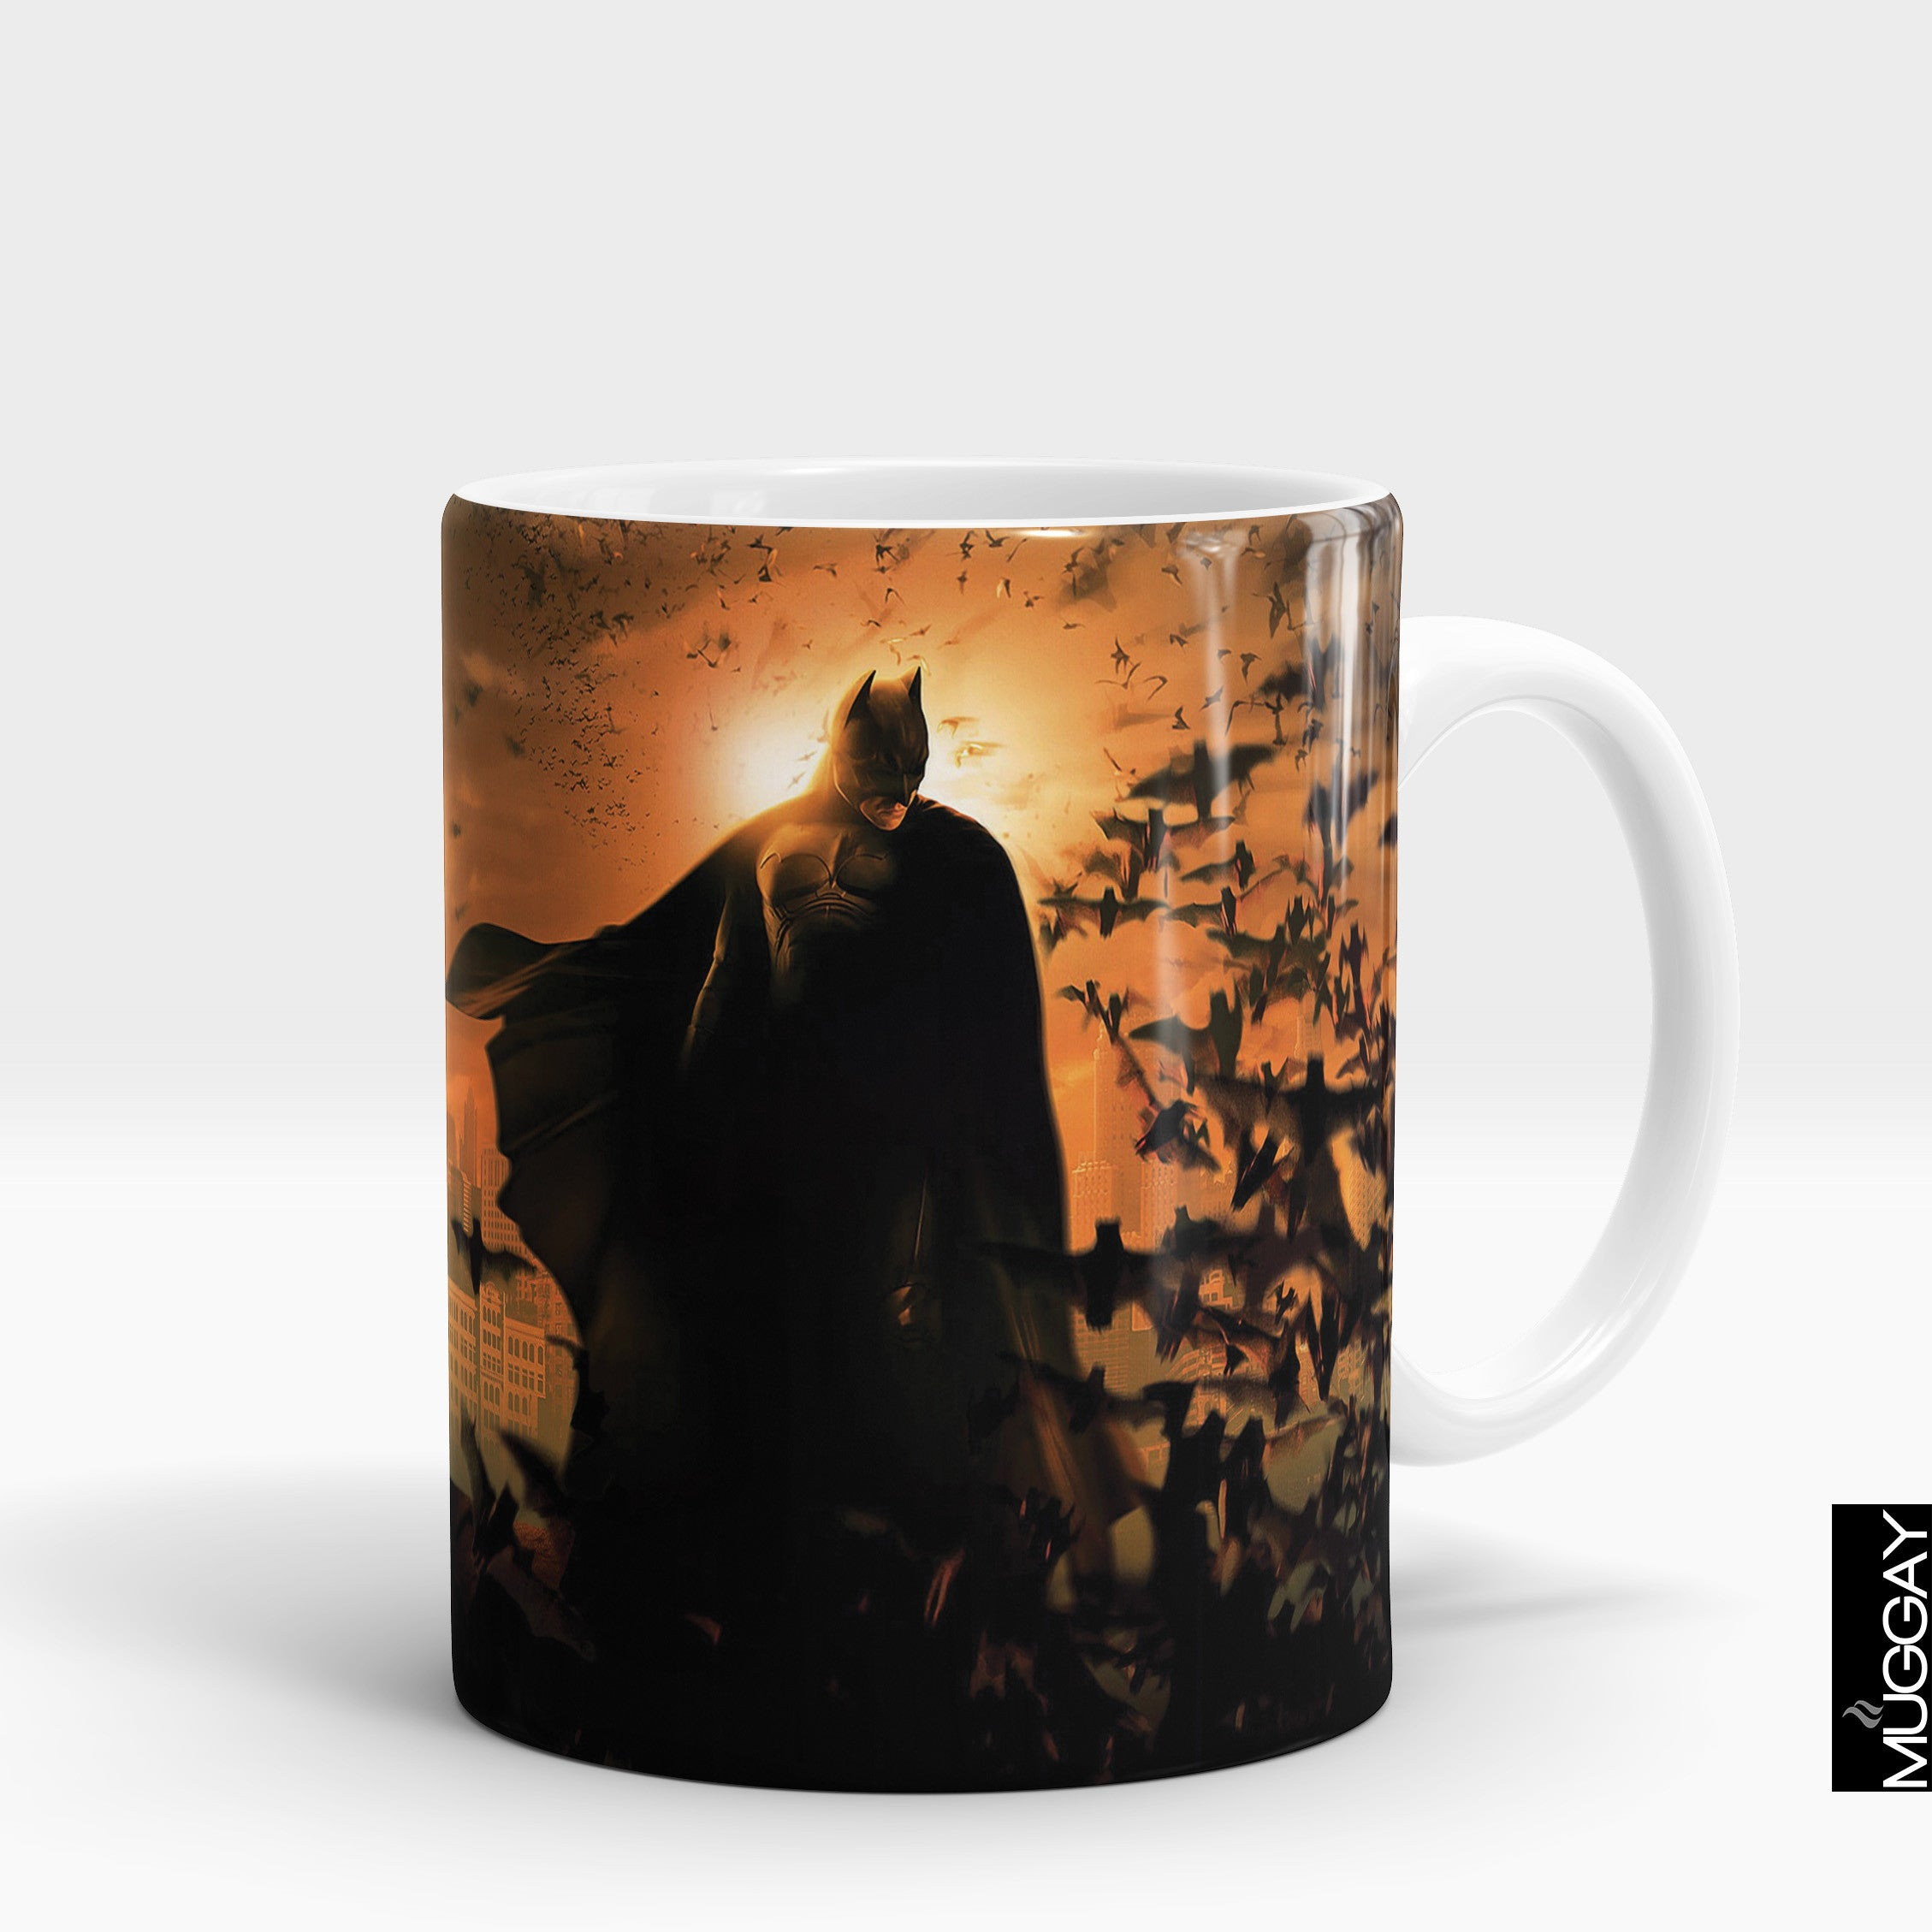 Batman Design Mugs - bm7 - Muggay.com - Mugs - Printing shop - truck Art mugs - Mug printing - Customized printing - Digital printing - Muggay